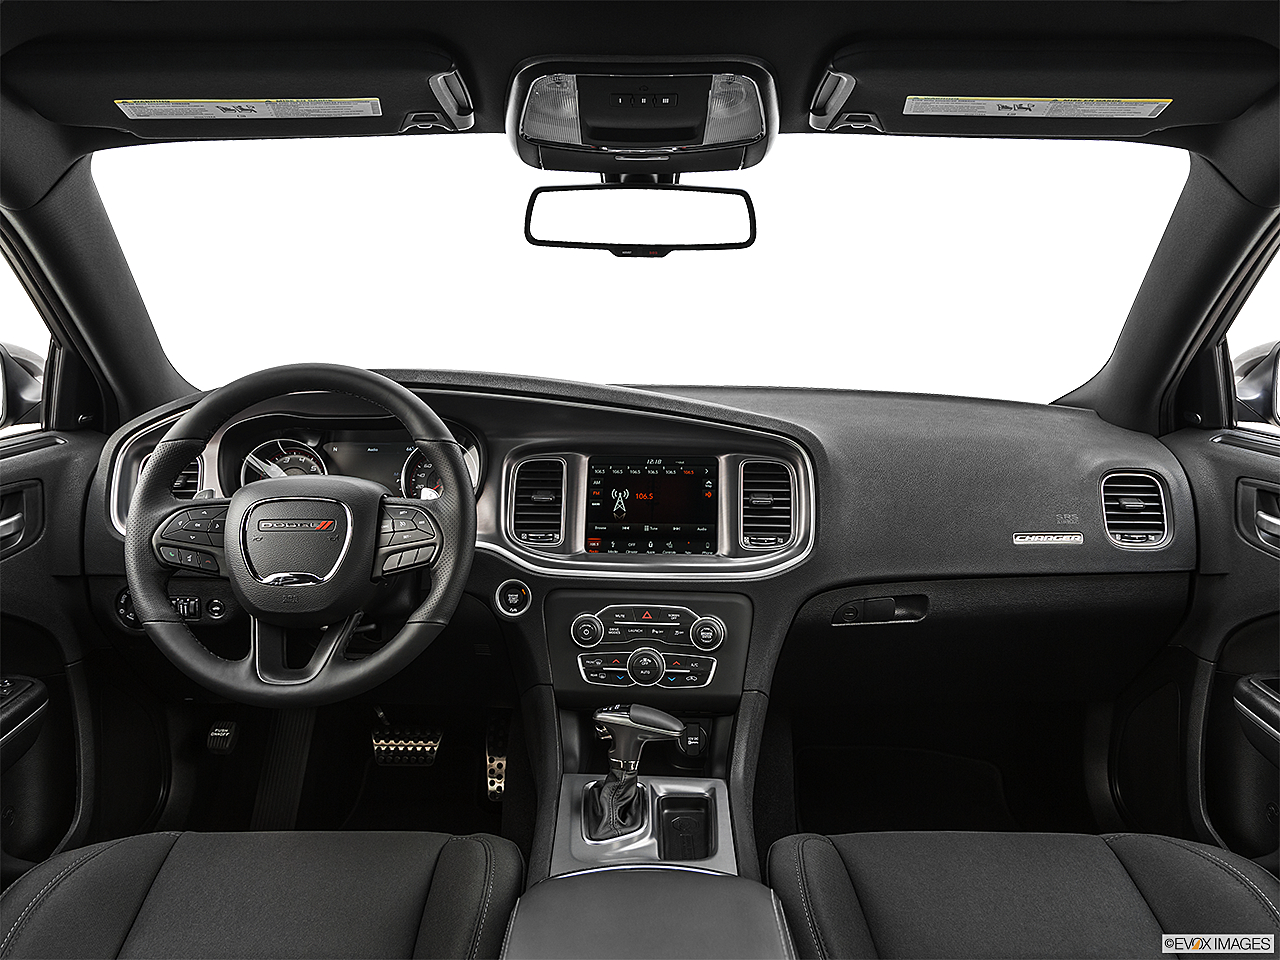 2019 Dodge Charger Scat Pack, centered wide dash shot